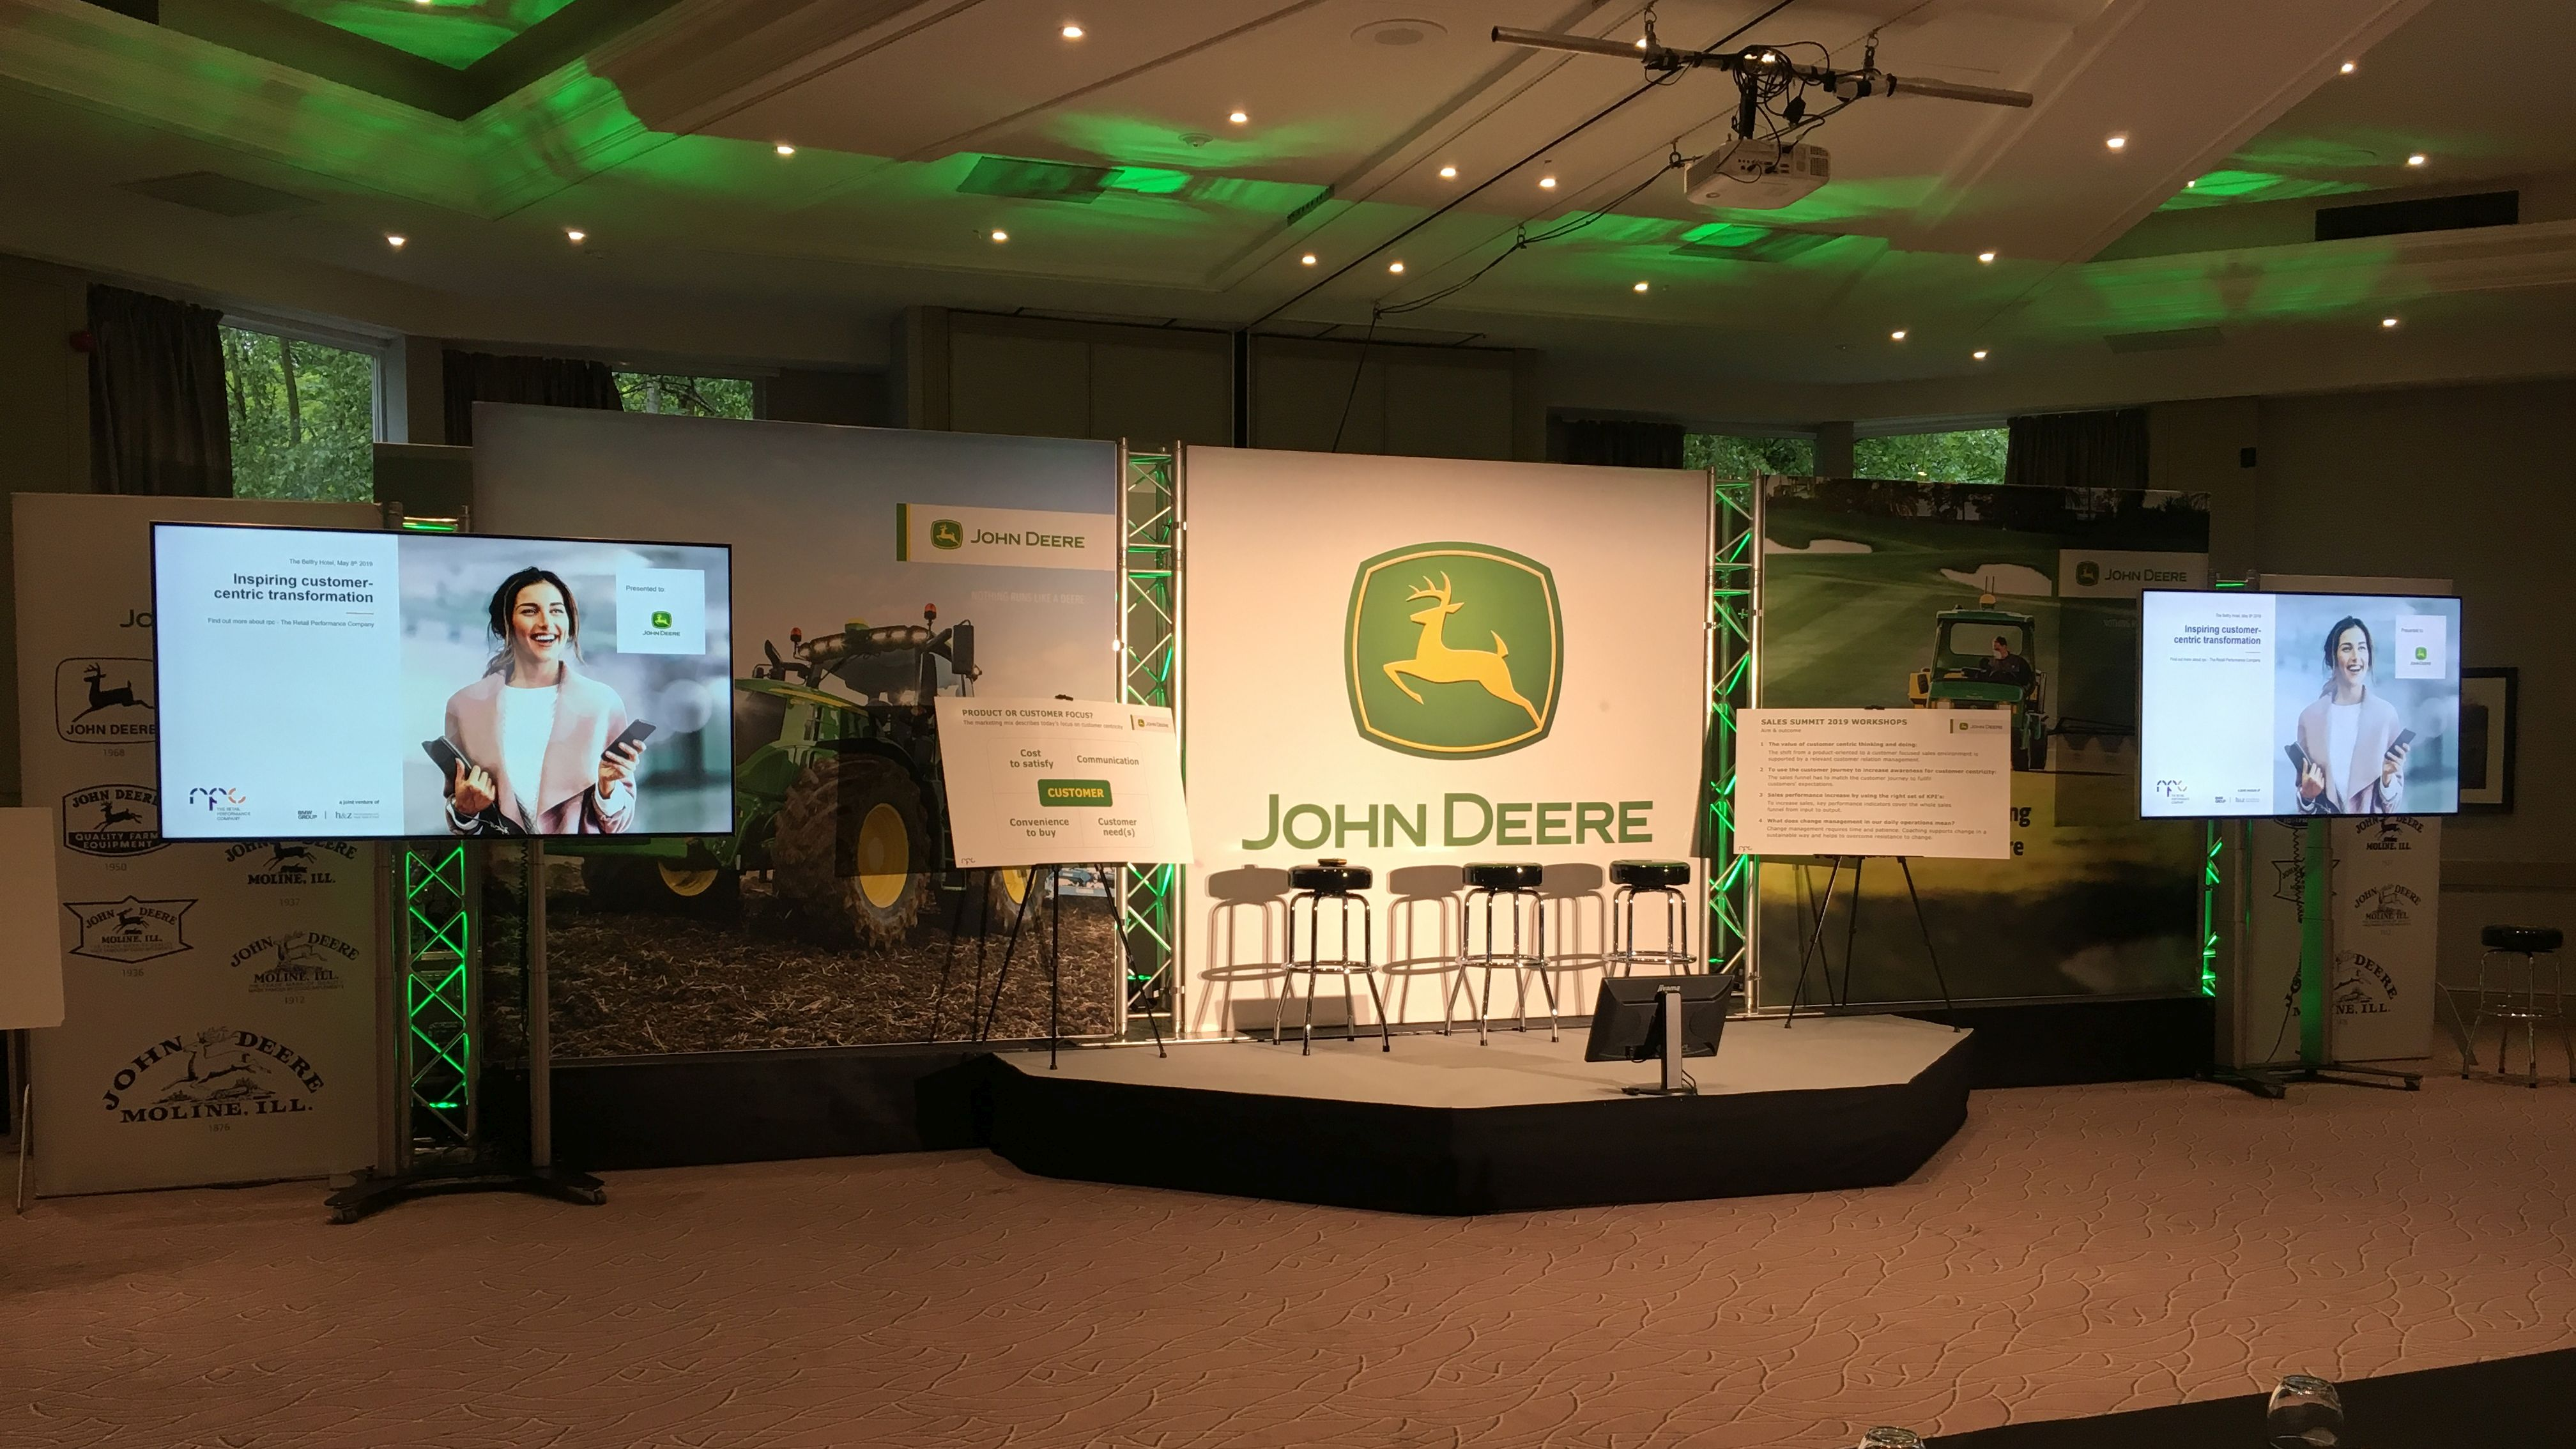 OneBigStar John Deere Sales Manager Summit at The Belfry 2019 Conference